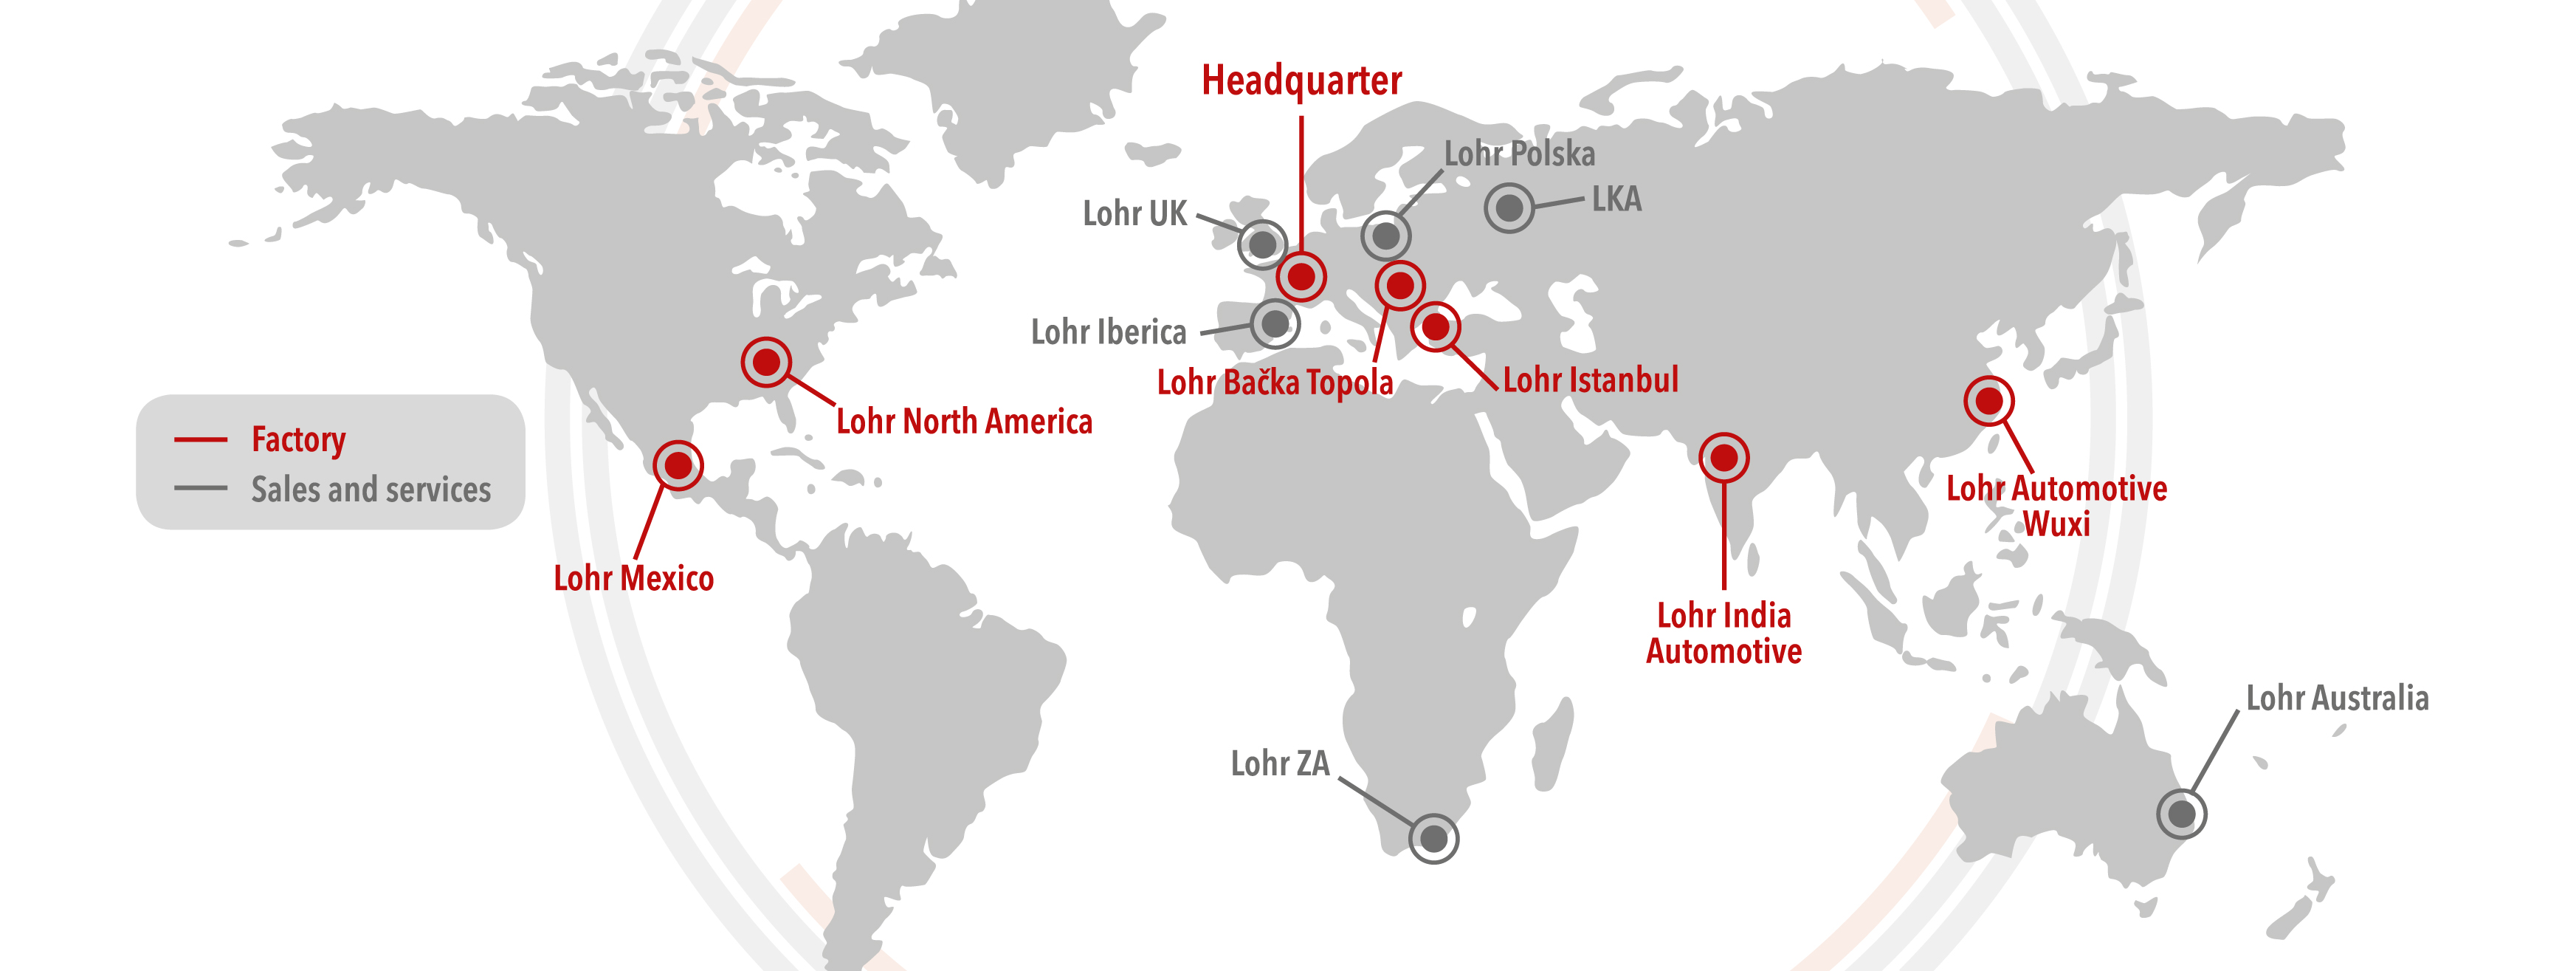 Lohr factories and points of sales and services around the world, map.